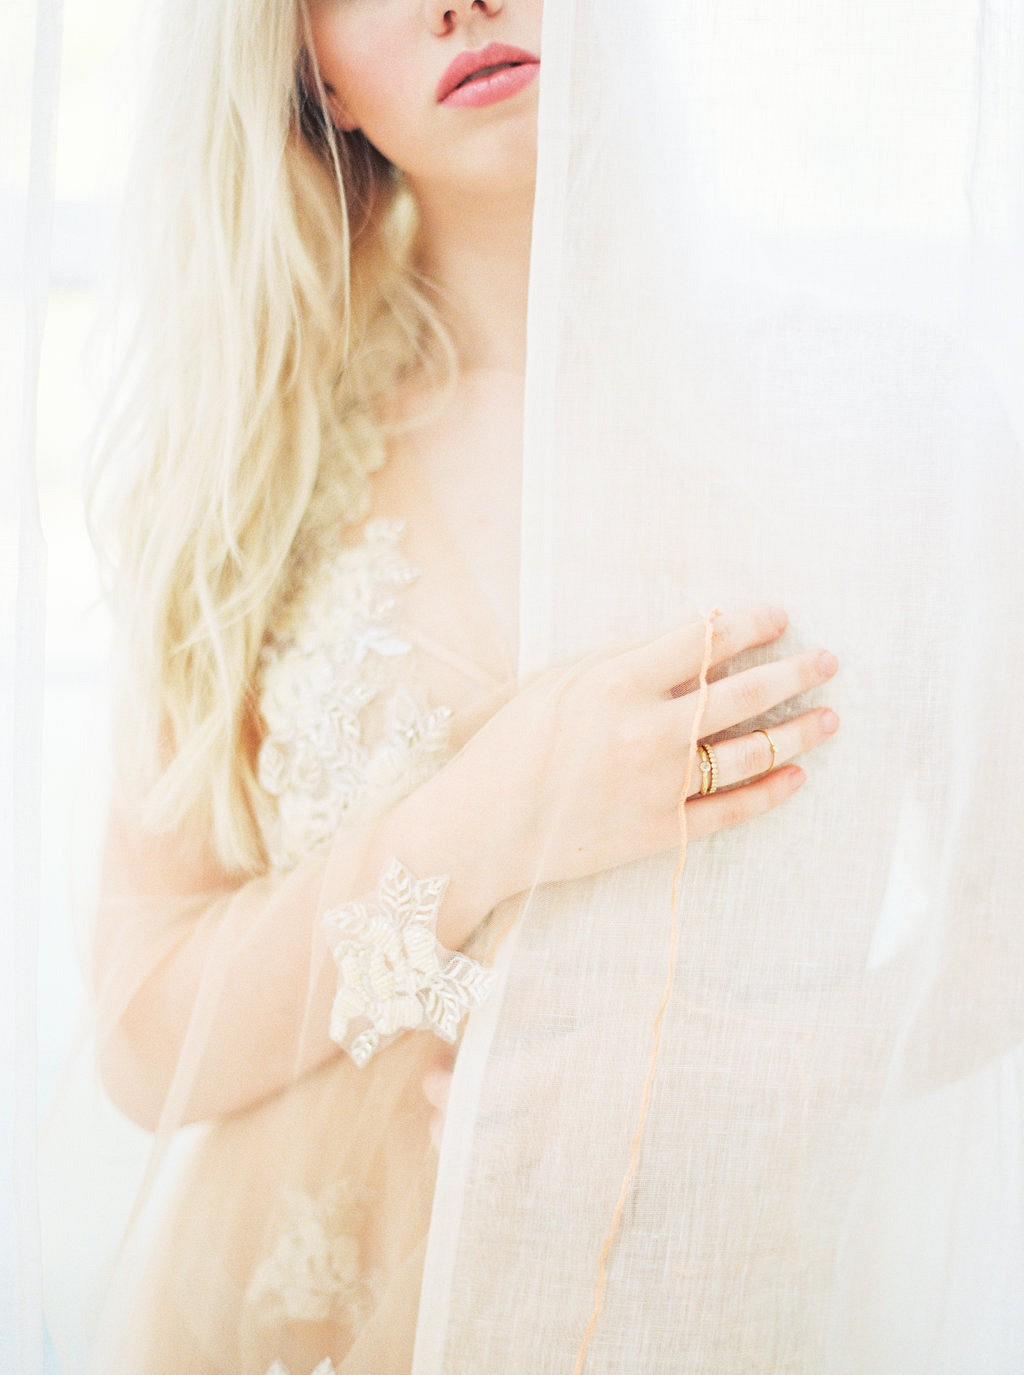 Sun Drenched Bridal Boudoir Session